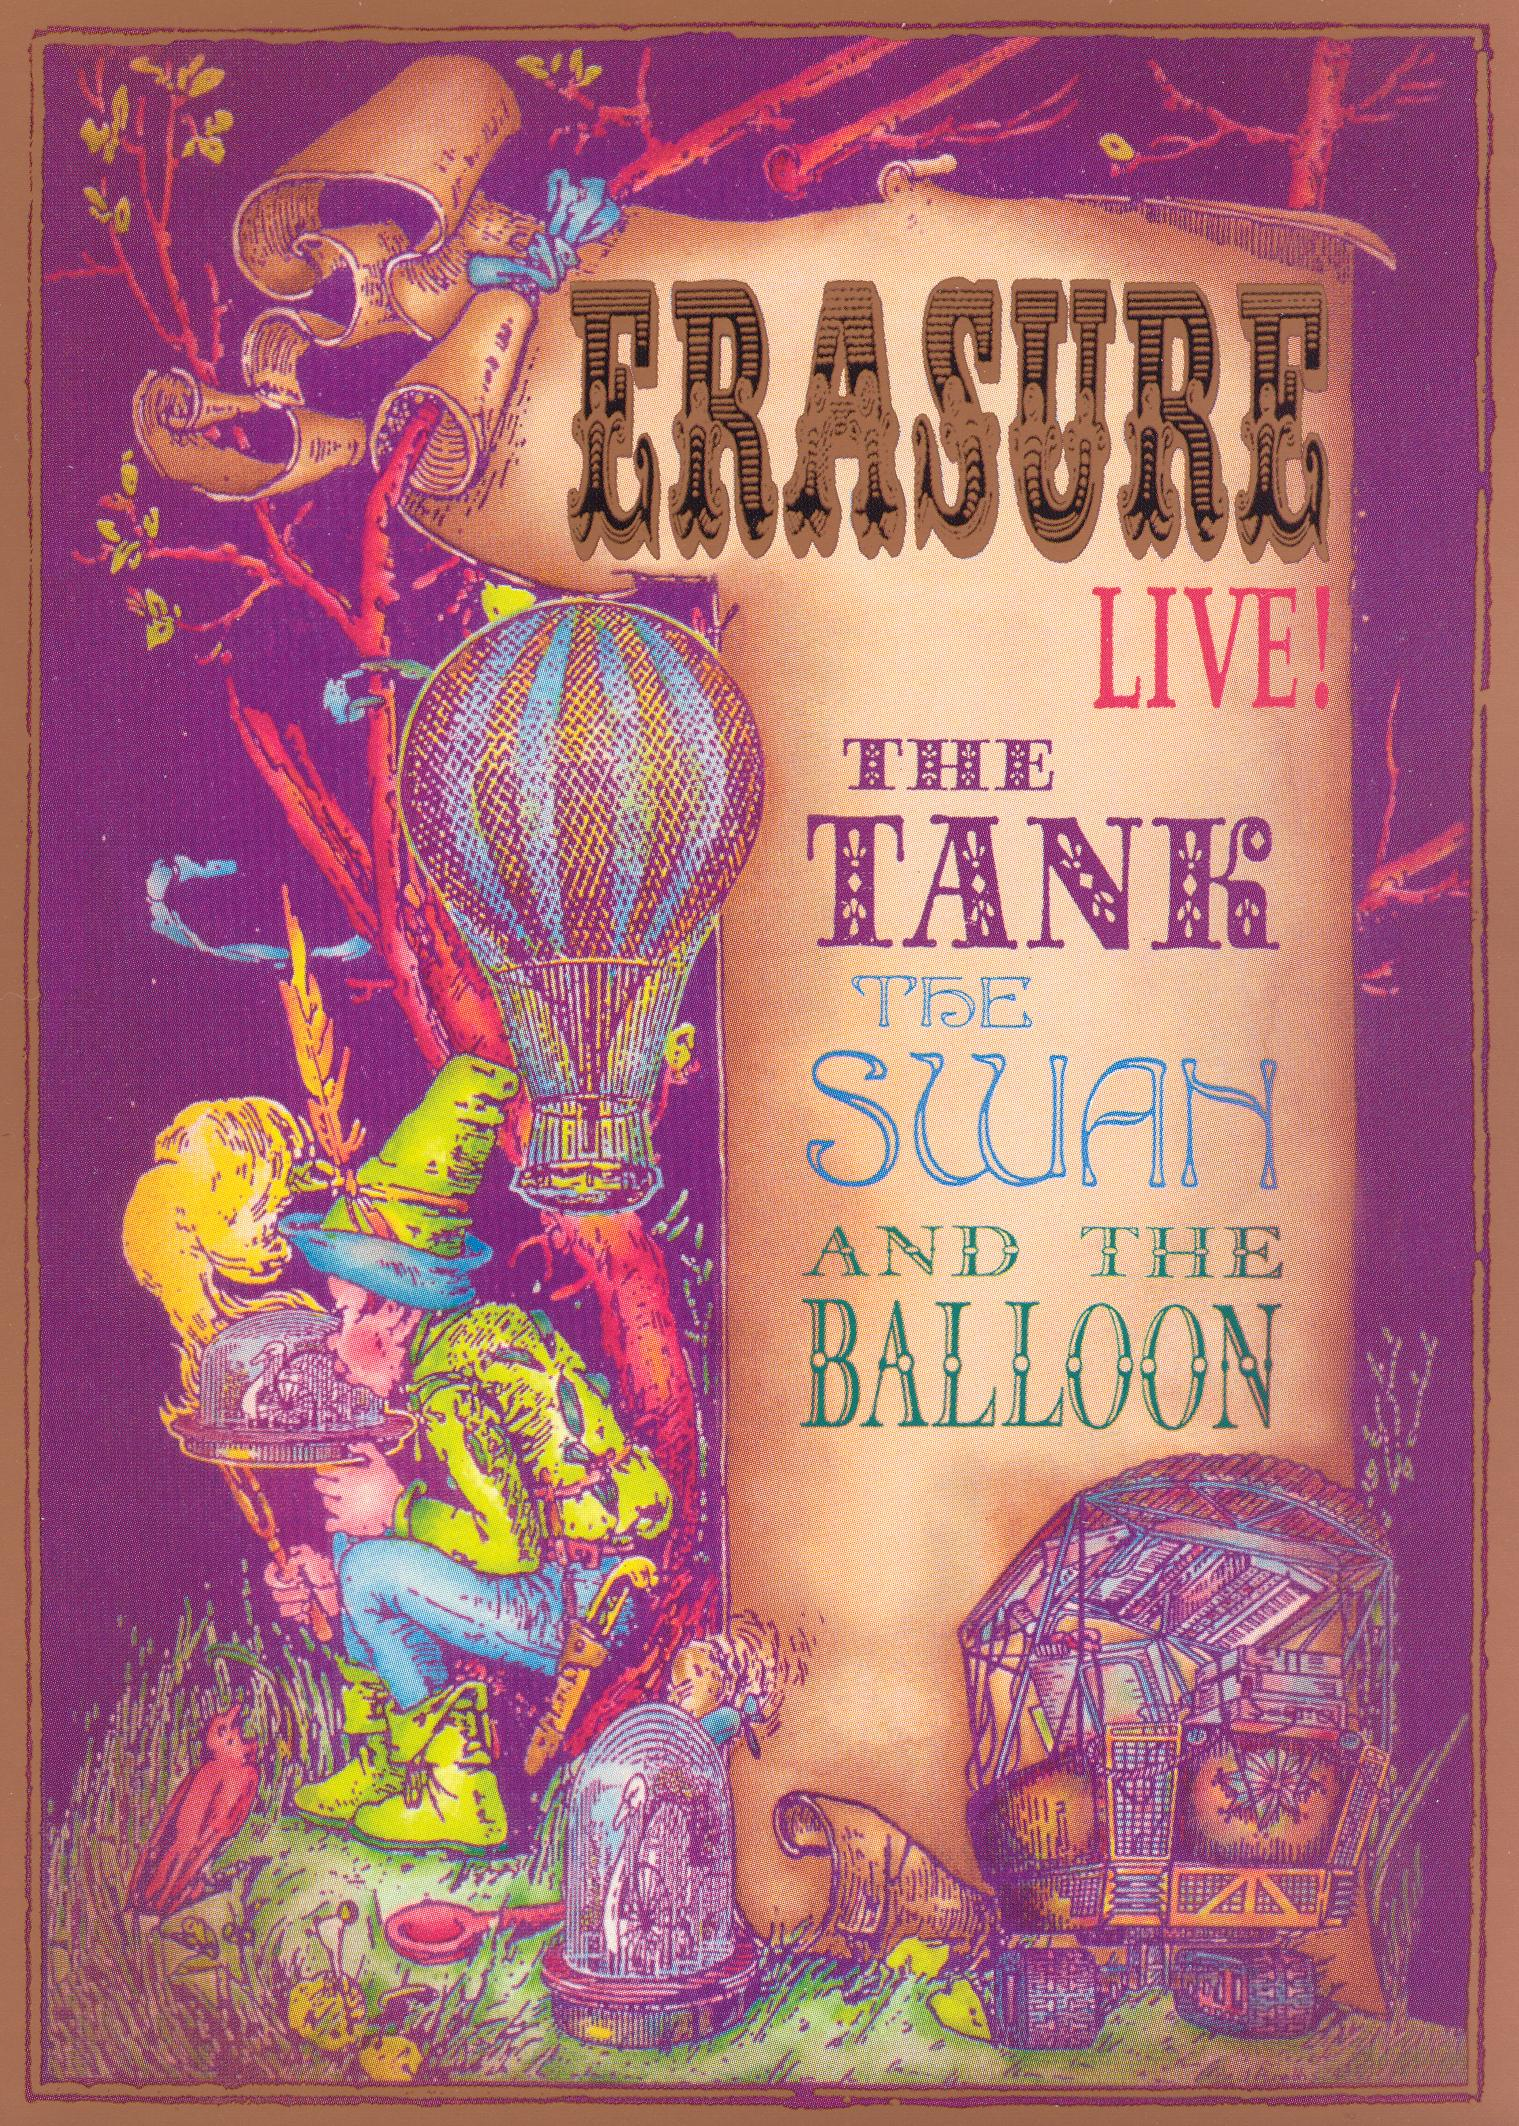 Erasure: The Tank, the Swan, and the Balloon Live!